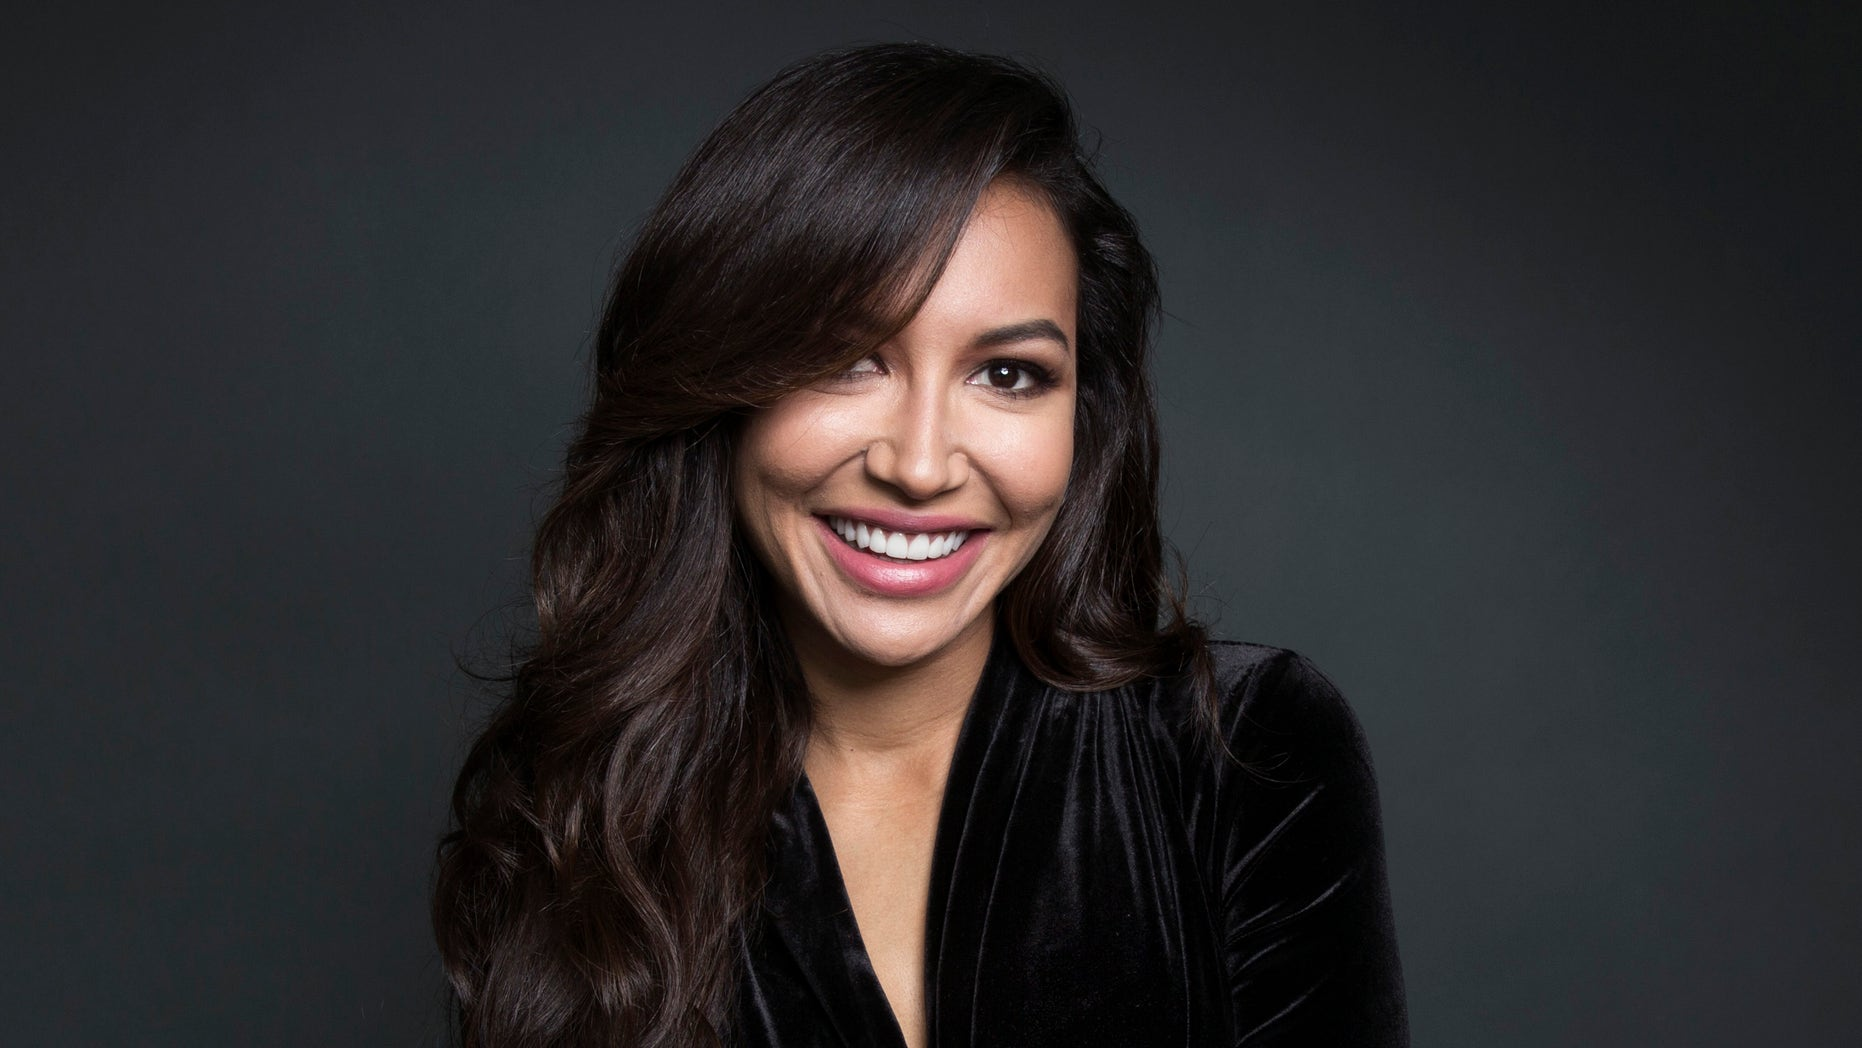 In this Aug. 31, 2016 photo, actress Naya Rivera poses for a portrait in New York.